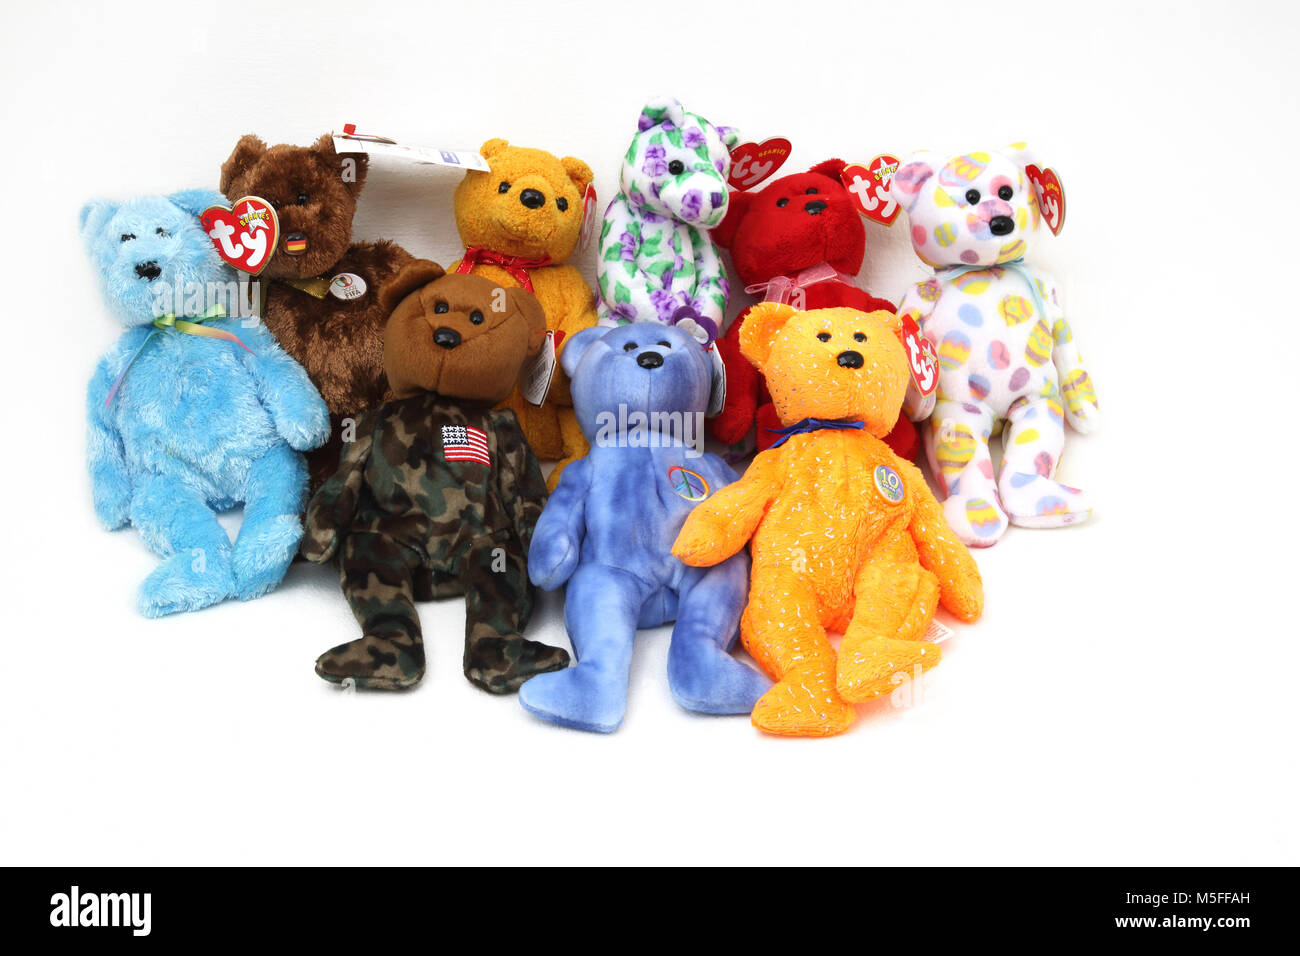 Collection of TY Beanie Babies Including FIFA 2002 World Cup Bear and 10 Year Anniversary Bear - Stock Image